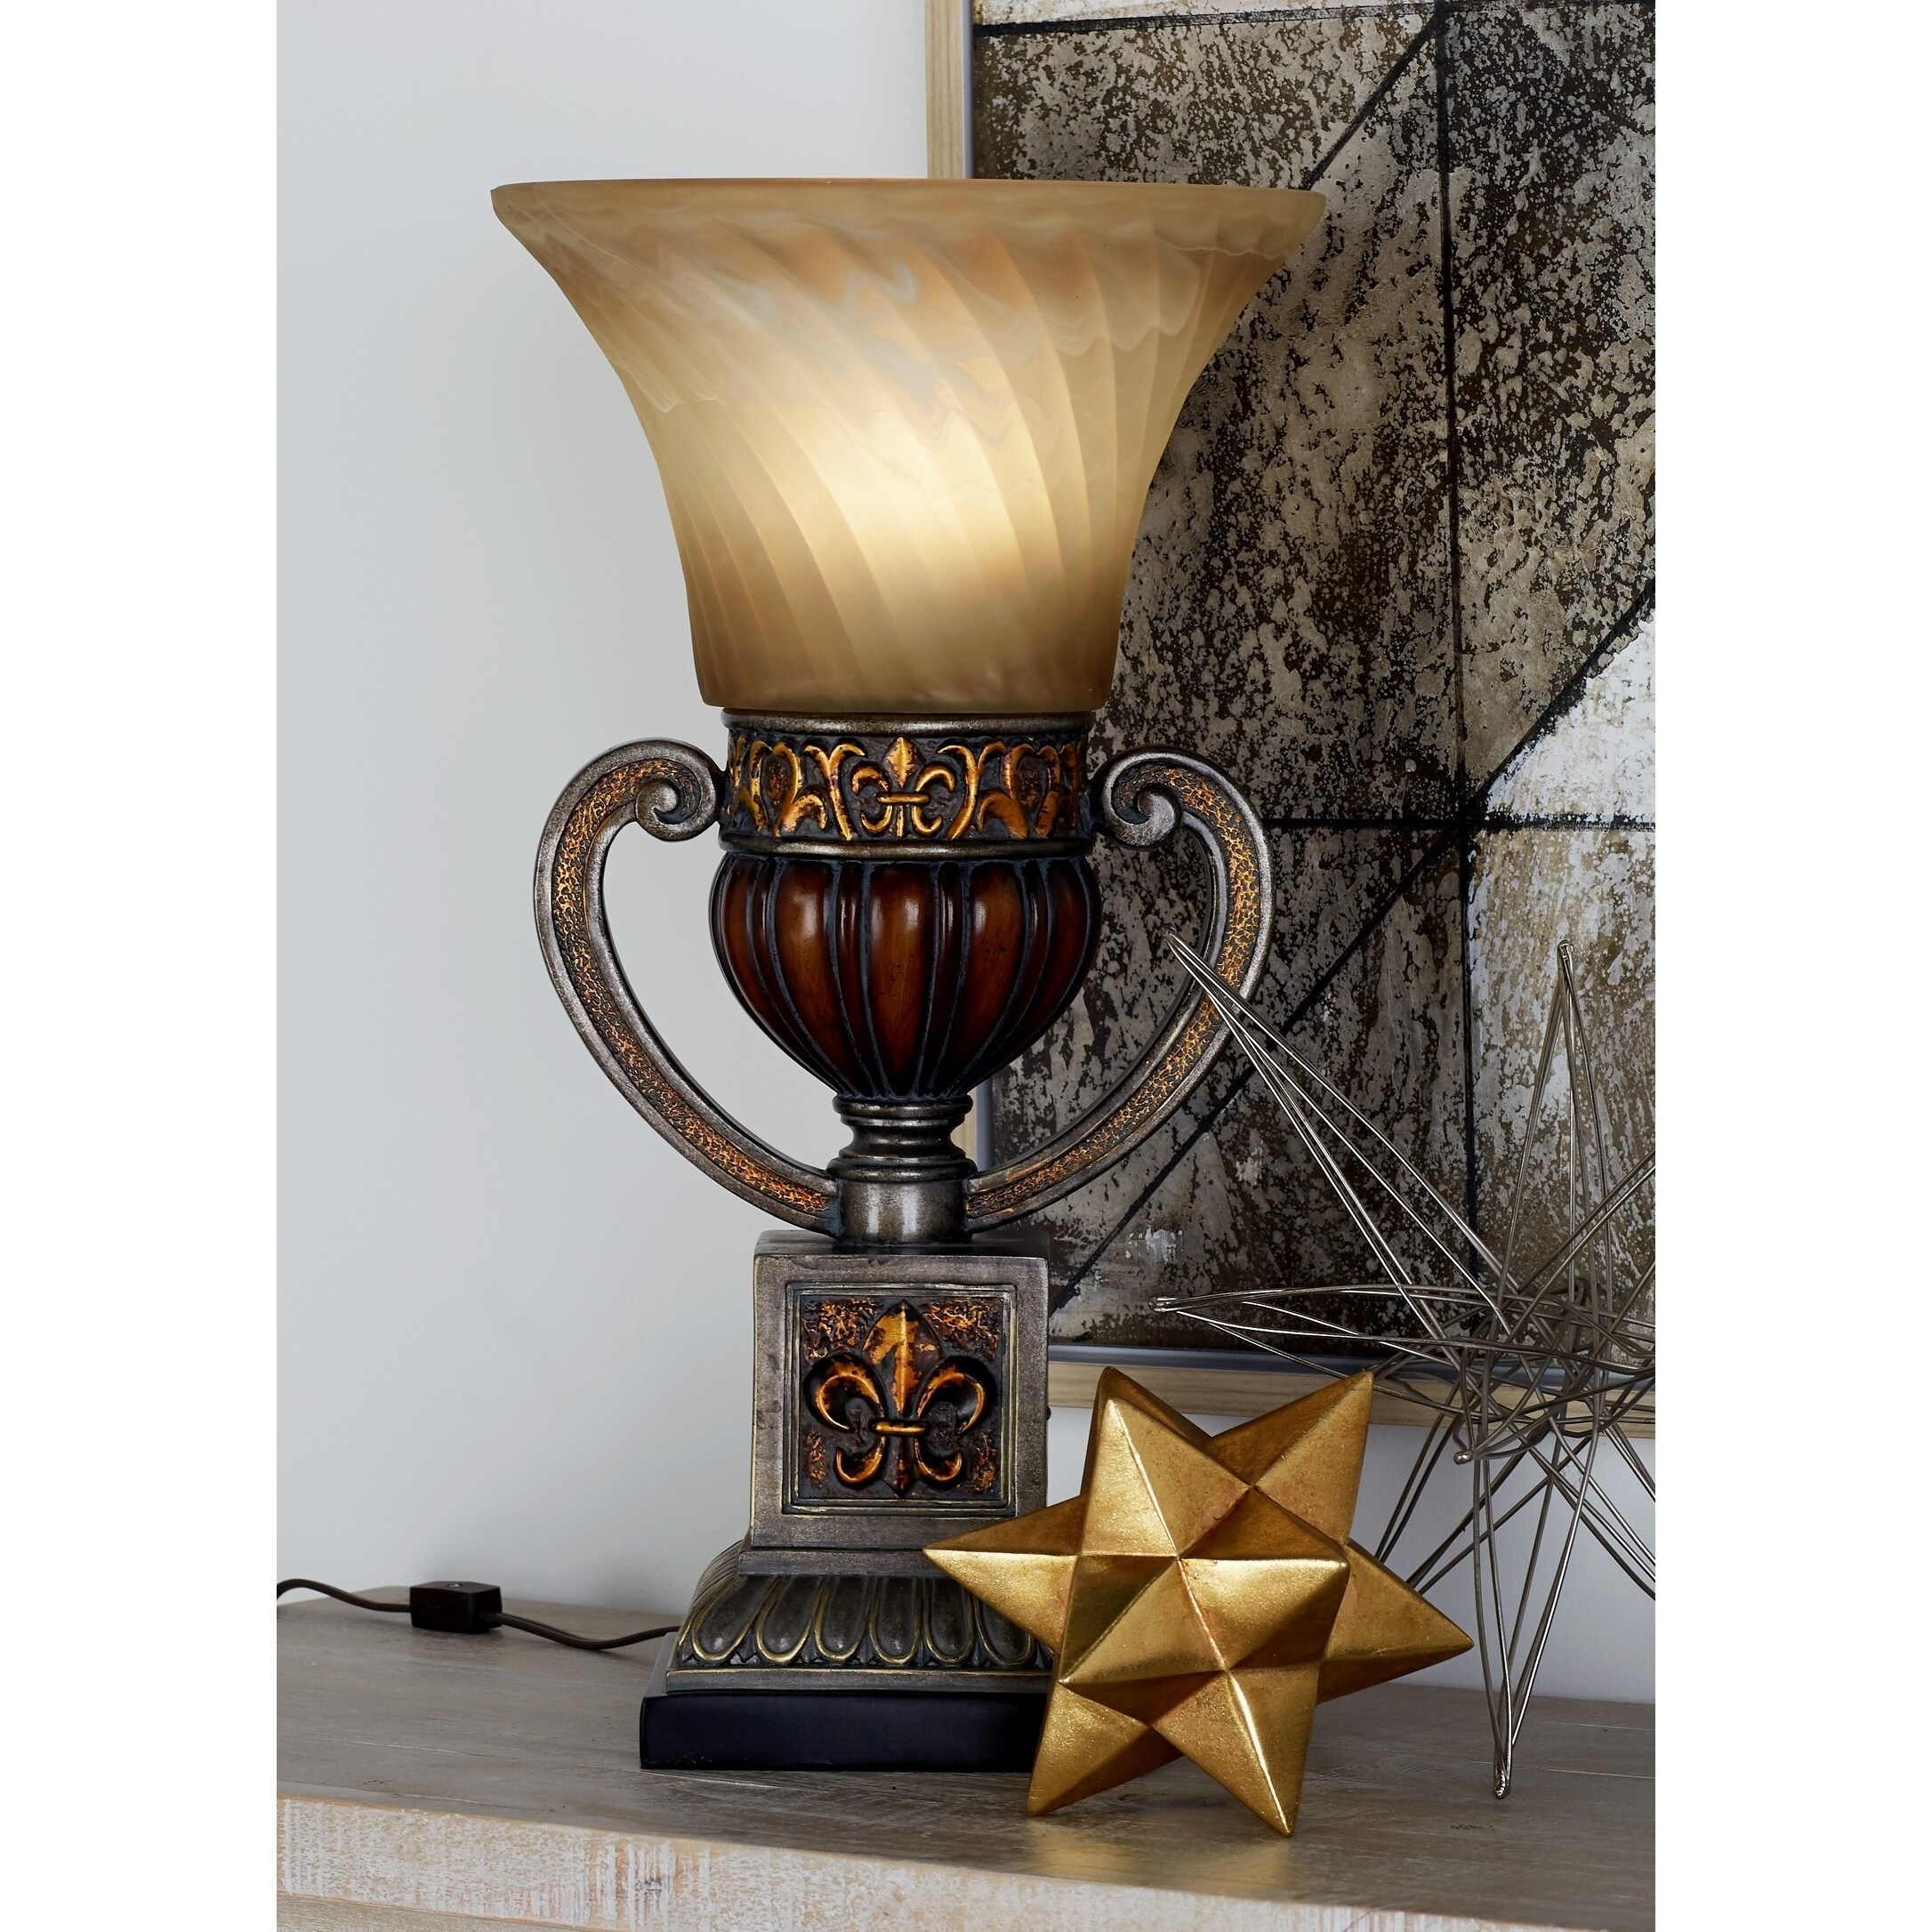 Studio 350 Antique Brown Polystone Uplight with Swirled A...